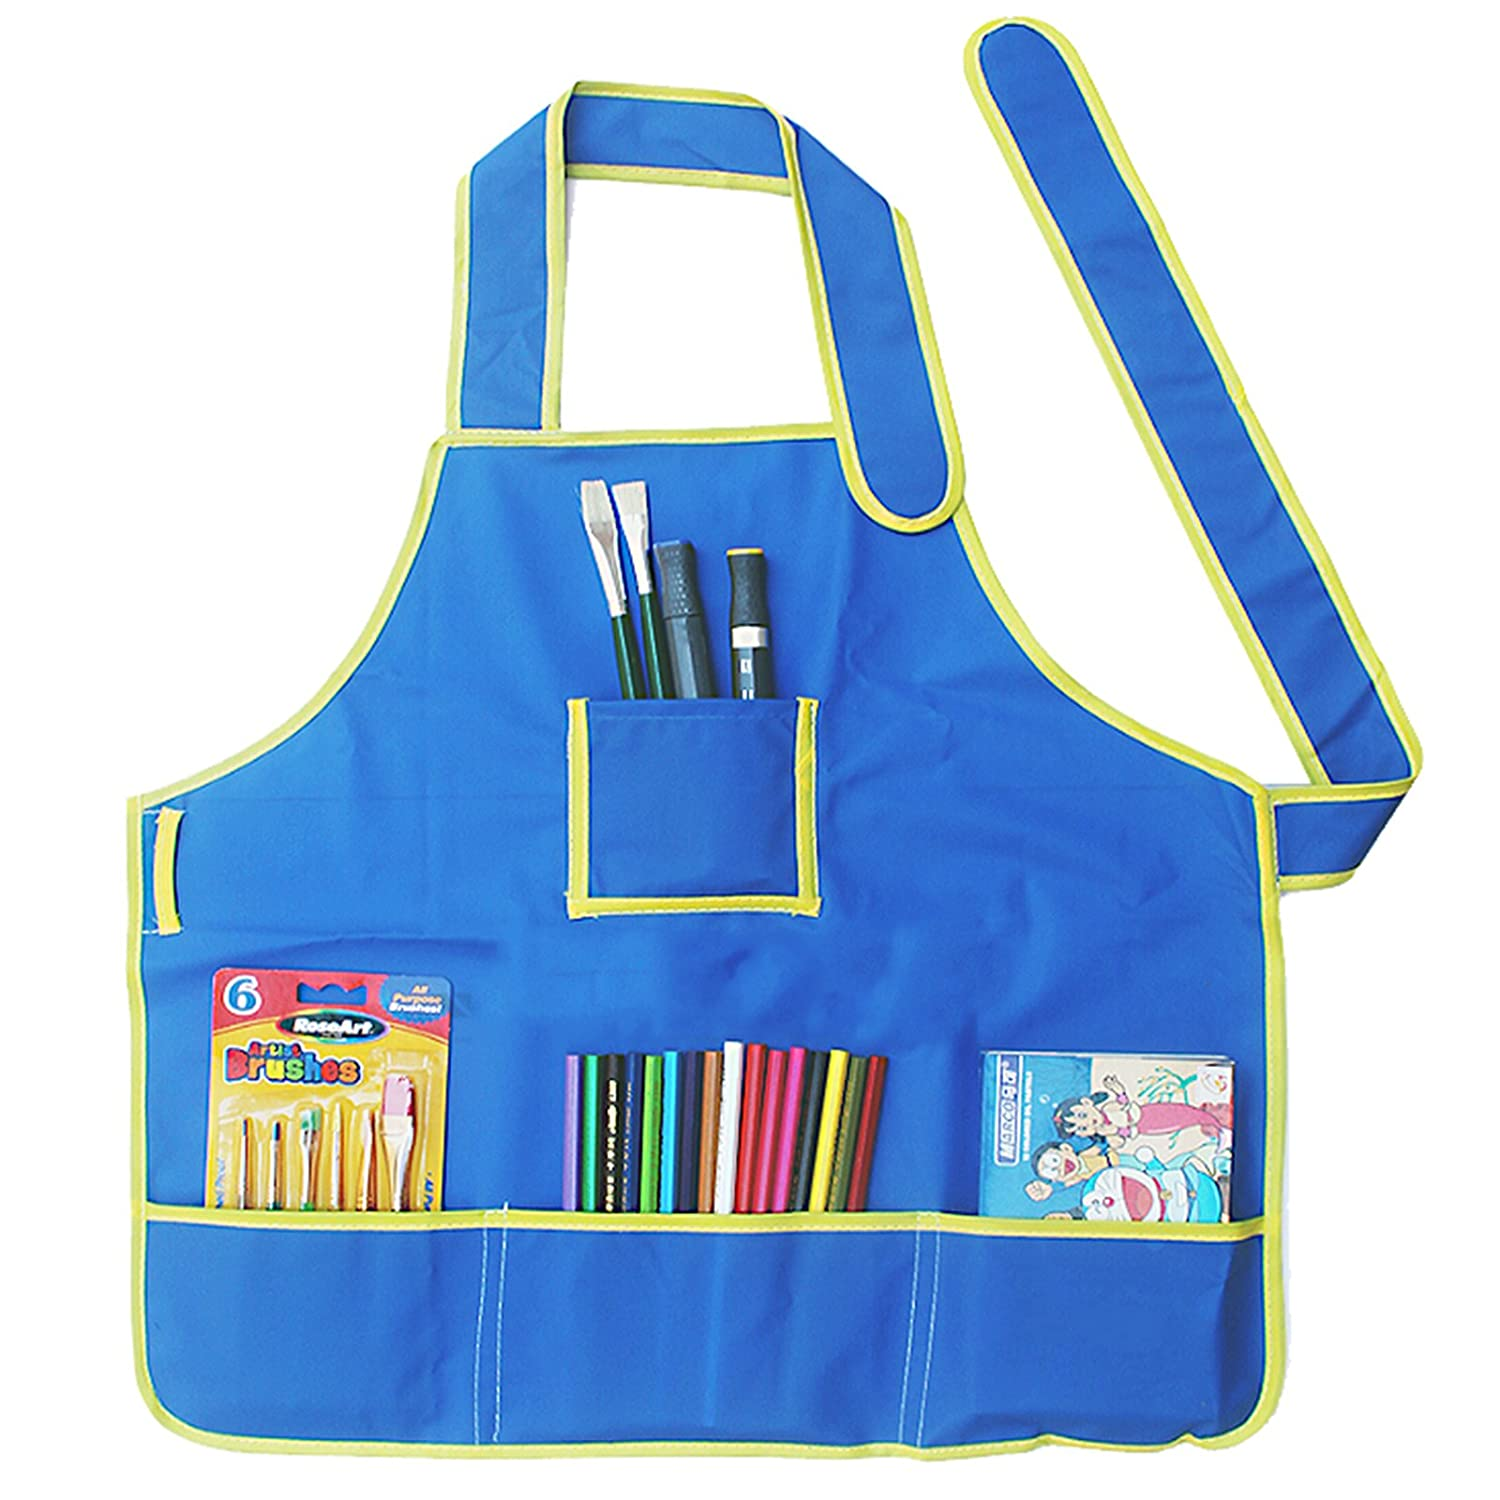 1pc Waterproof Kids Apron Painting Aprons Children's Art Smock With 4 Pockets For Kids Painting And Baking Blue AZX